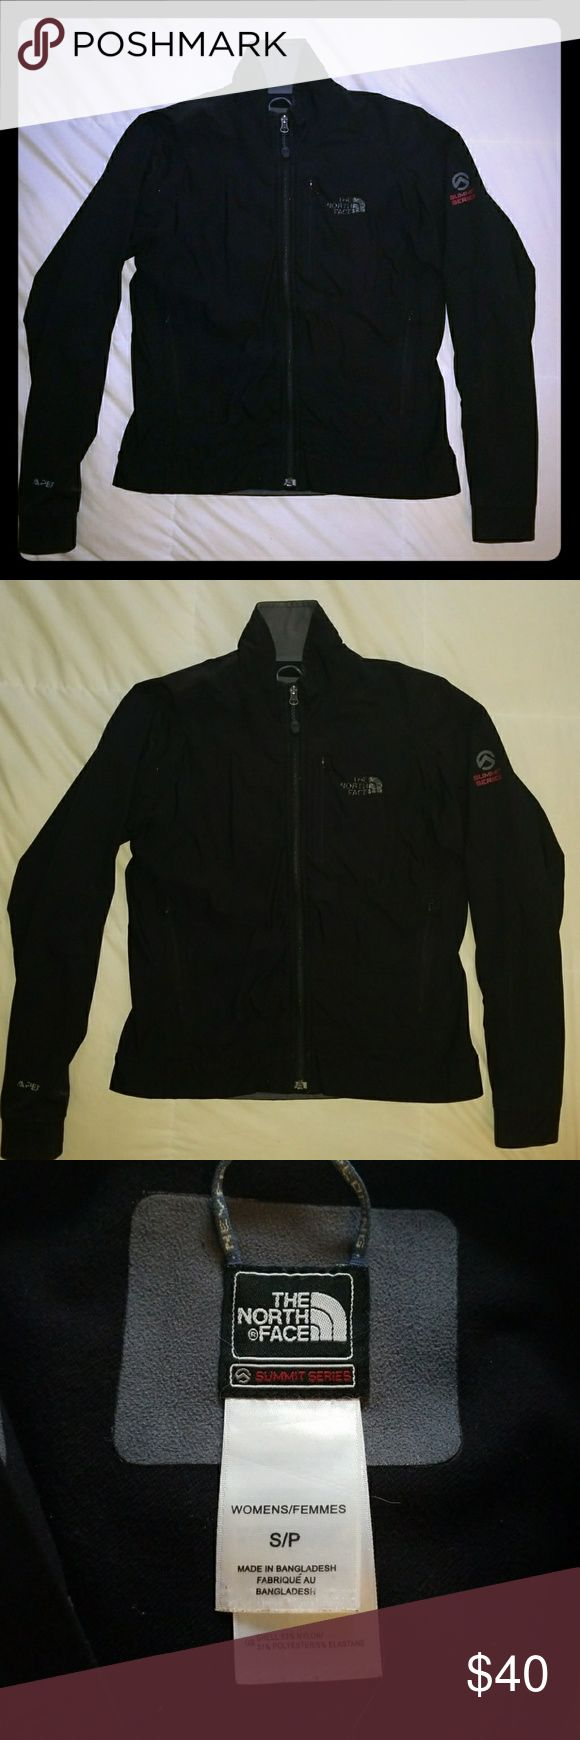 Small black North face jacket Summit series, black, North face coat. Hard exterior, fleece lining. One small hole inside left pocket. North face logo has fading as pictured. I LOVE this jacket, but will part with for the right offer. The North Face Jackets & Coats